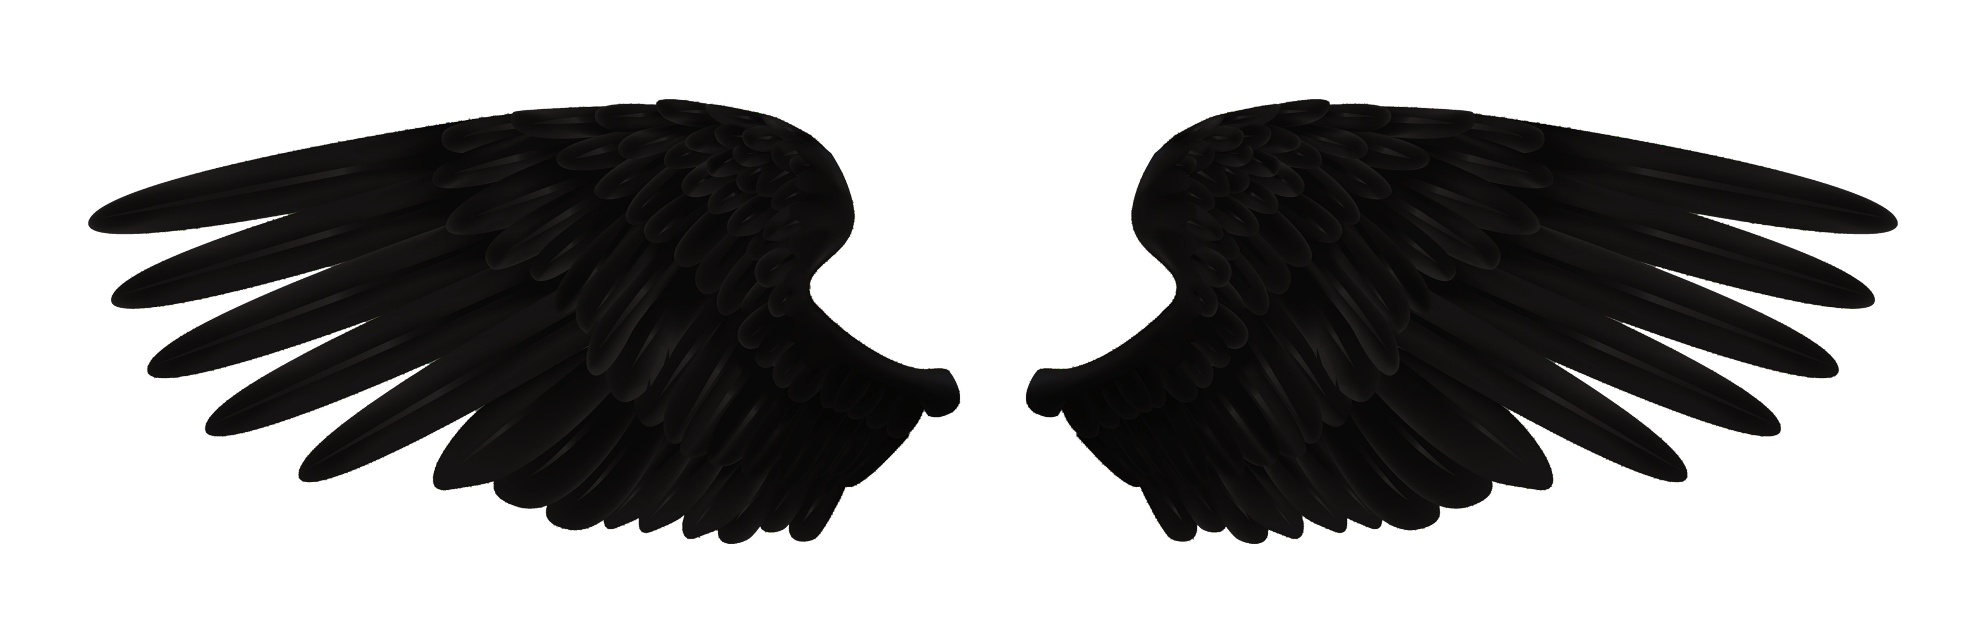 #furby #wings #evil #devil #halloween #feather #angel #black #goth #gothic #dreamcore #wedcore #cyberpunk #cybercore #cyber #draincore #soft #weirdcore #nostalgiacore #ilminal #y2k #grunge #aesthetic #nostalgia #overlay #png #dark #drainer #edit #web #freetoedit